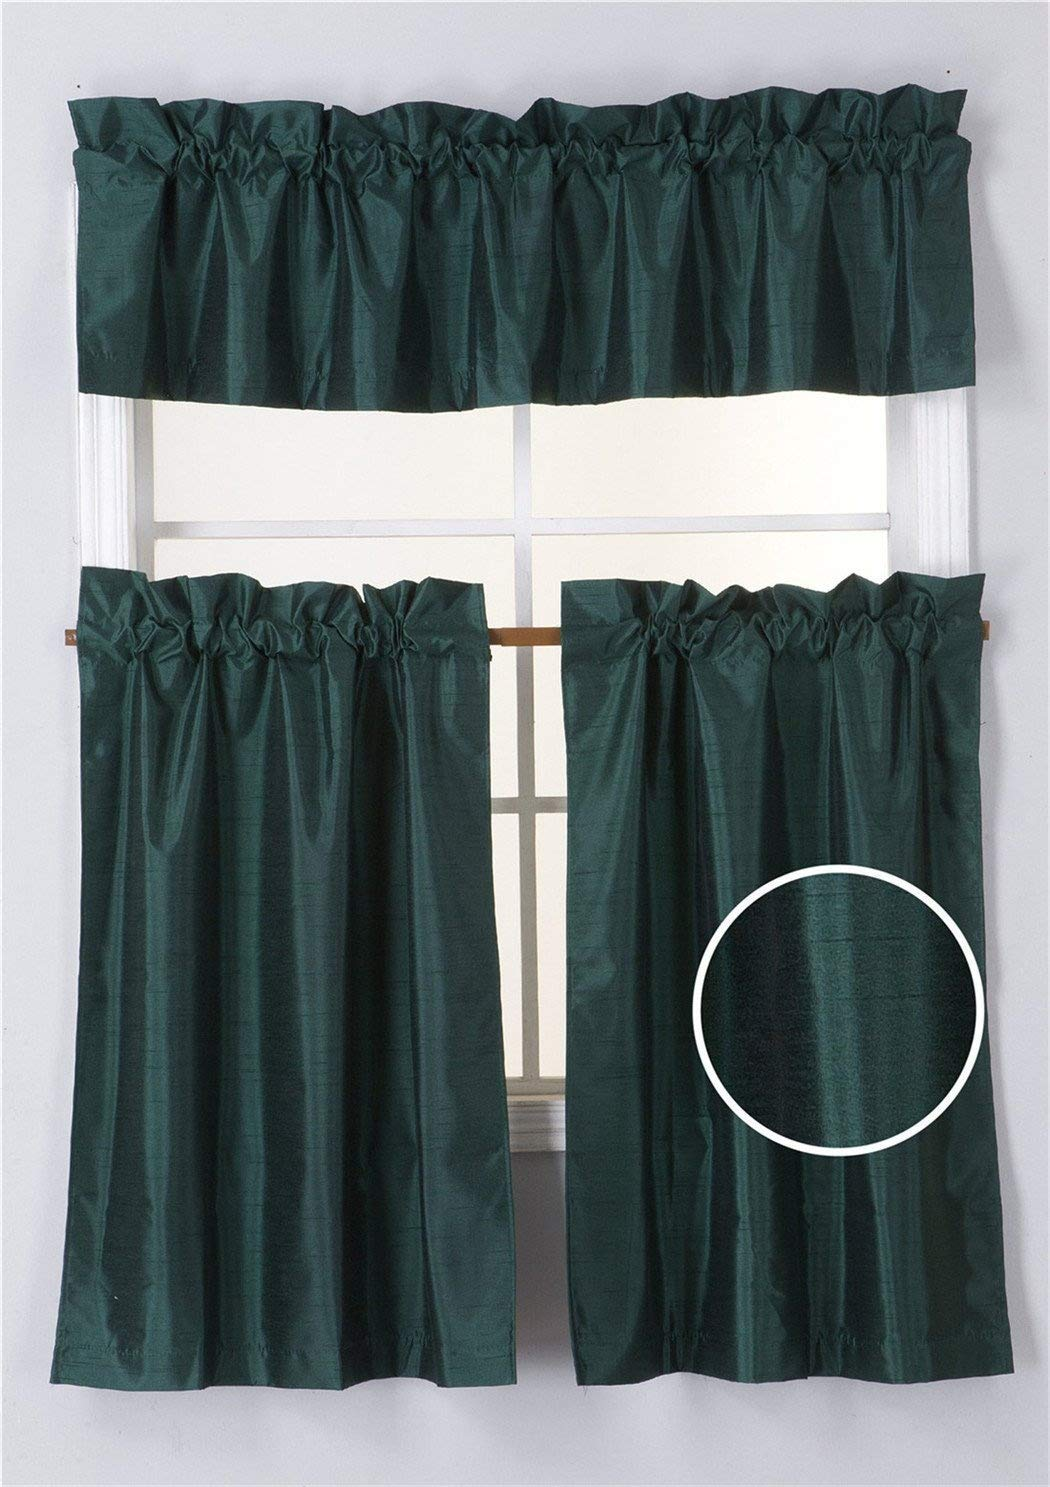 Elegant Home Decor Elegant Home 3 Piece Solid Color Faux Silk Semi Blackout Kitchen Window Curtain Set with Tiers and Valance Solid Color White Lined Thermal Blackout Drape Window Treatment Set #K4 Purple//Lilac